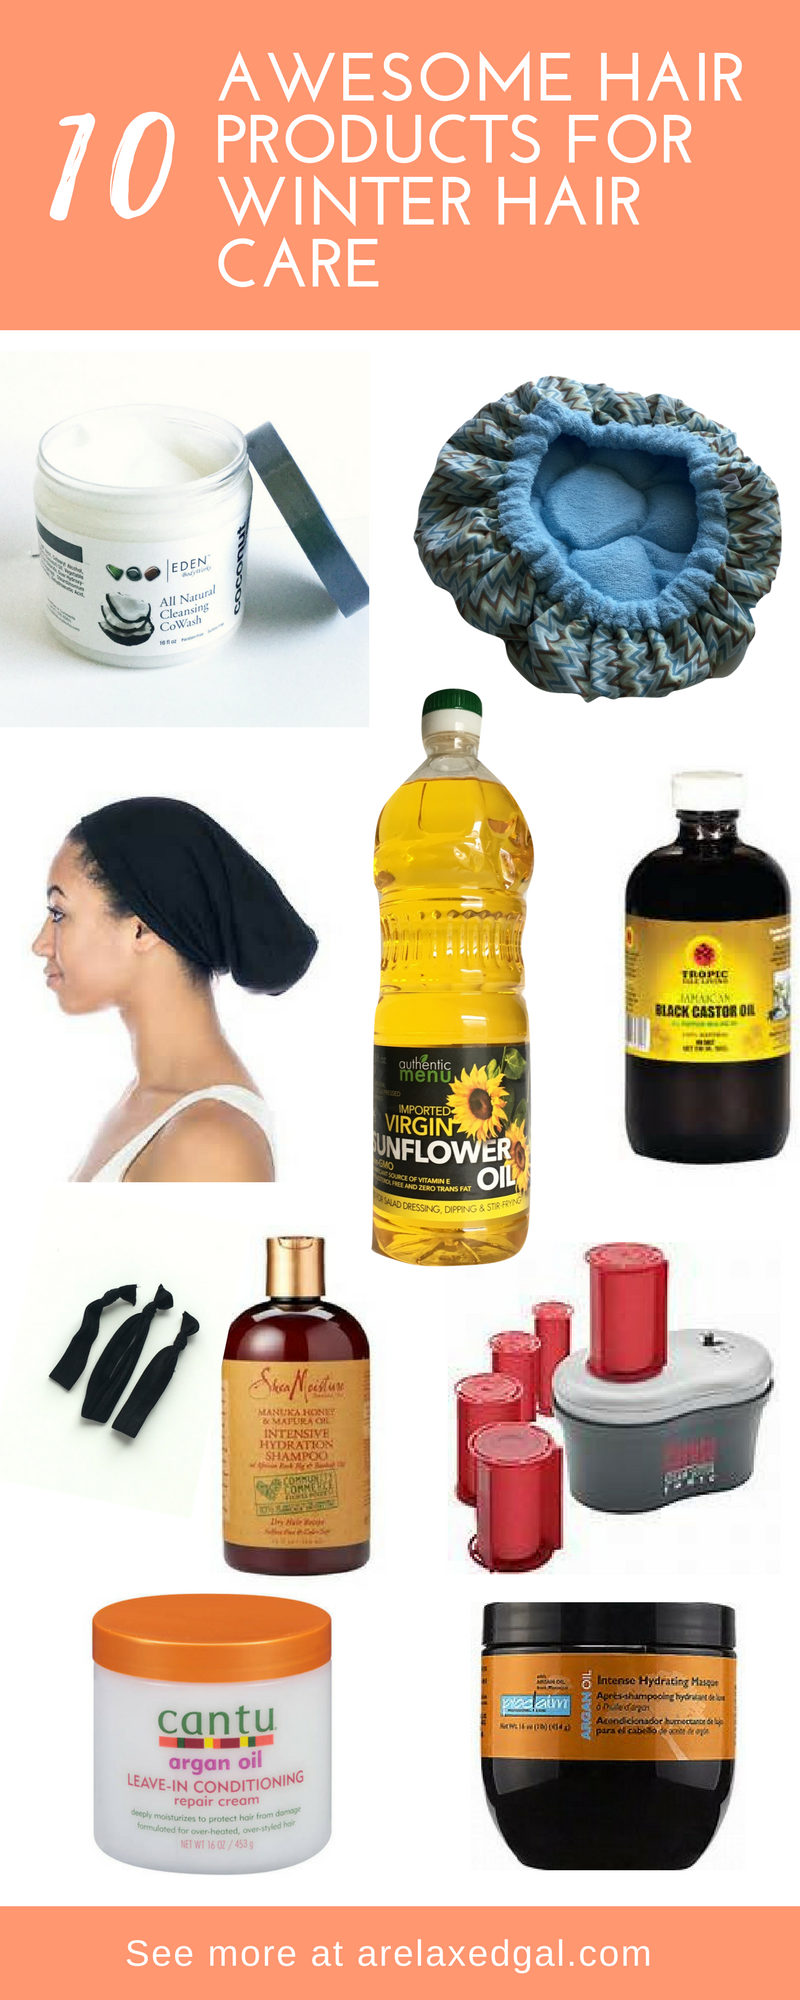 To Avoid Having Damaged Hair Come Springtime You Can Use Products Like The 10 In This Post That Will Help Pr Winter Hair Care Hair Care Tips Hair Care Routine